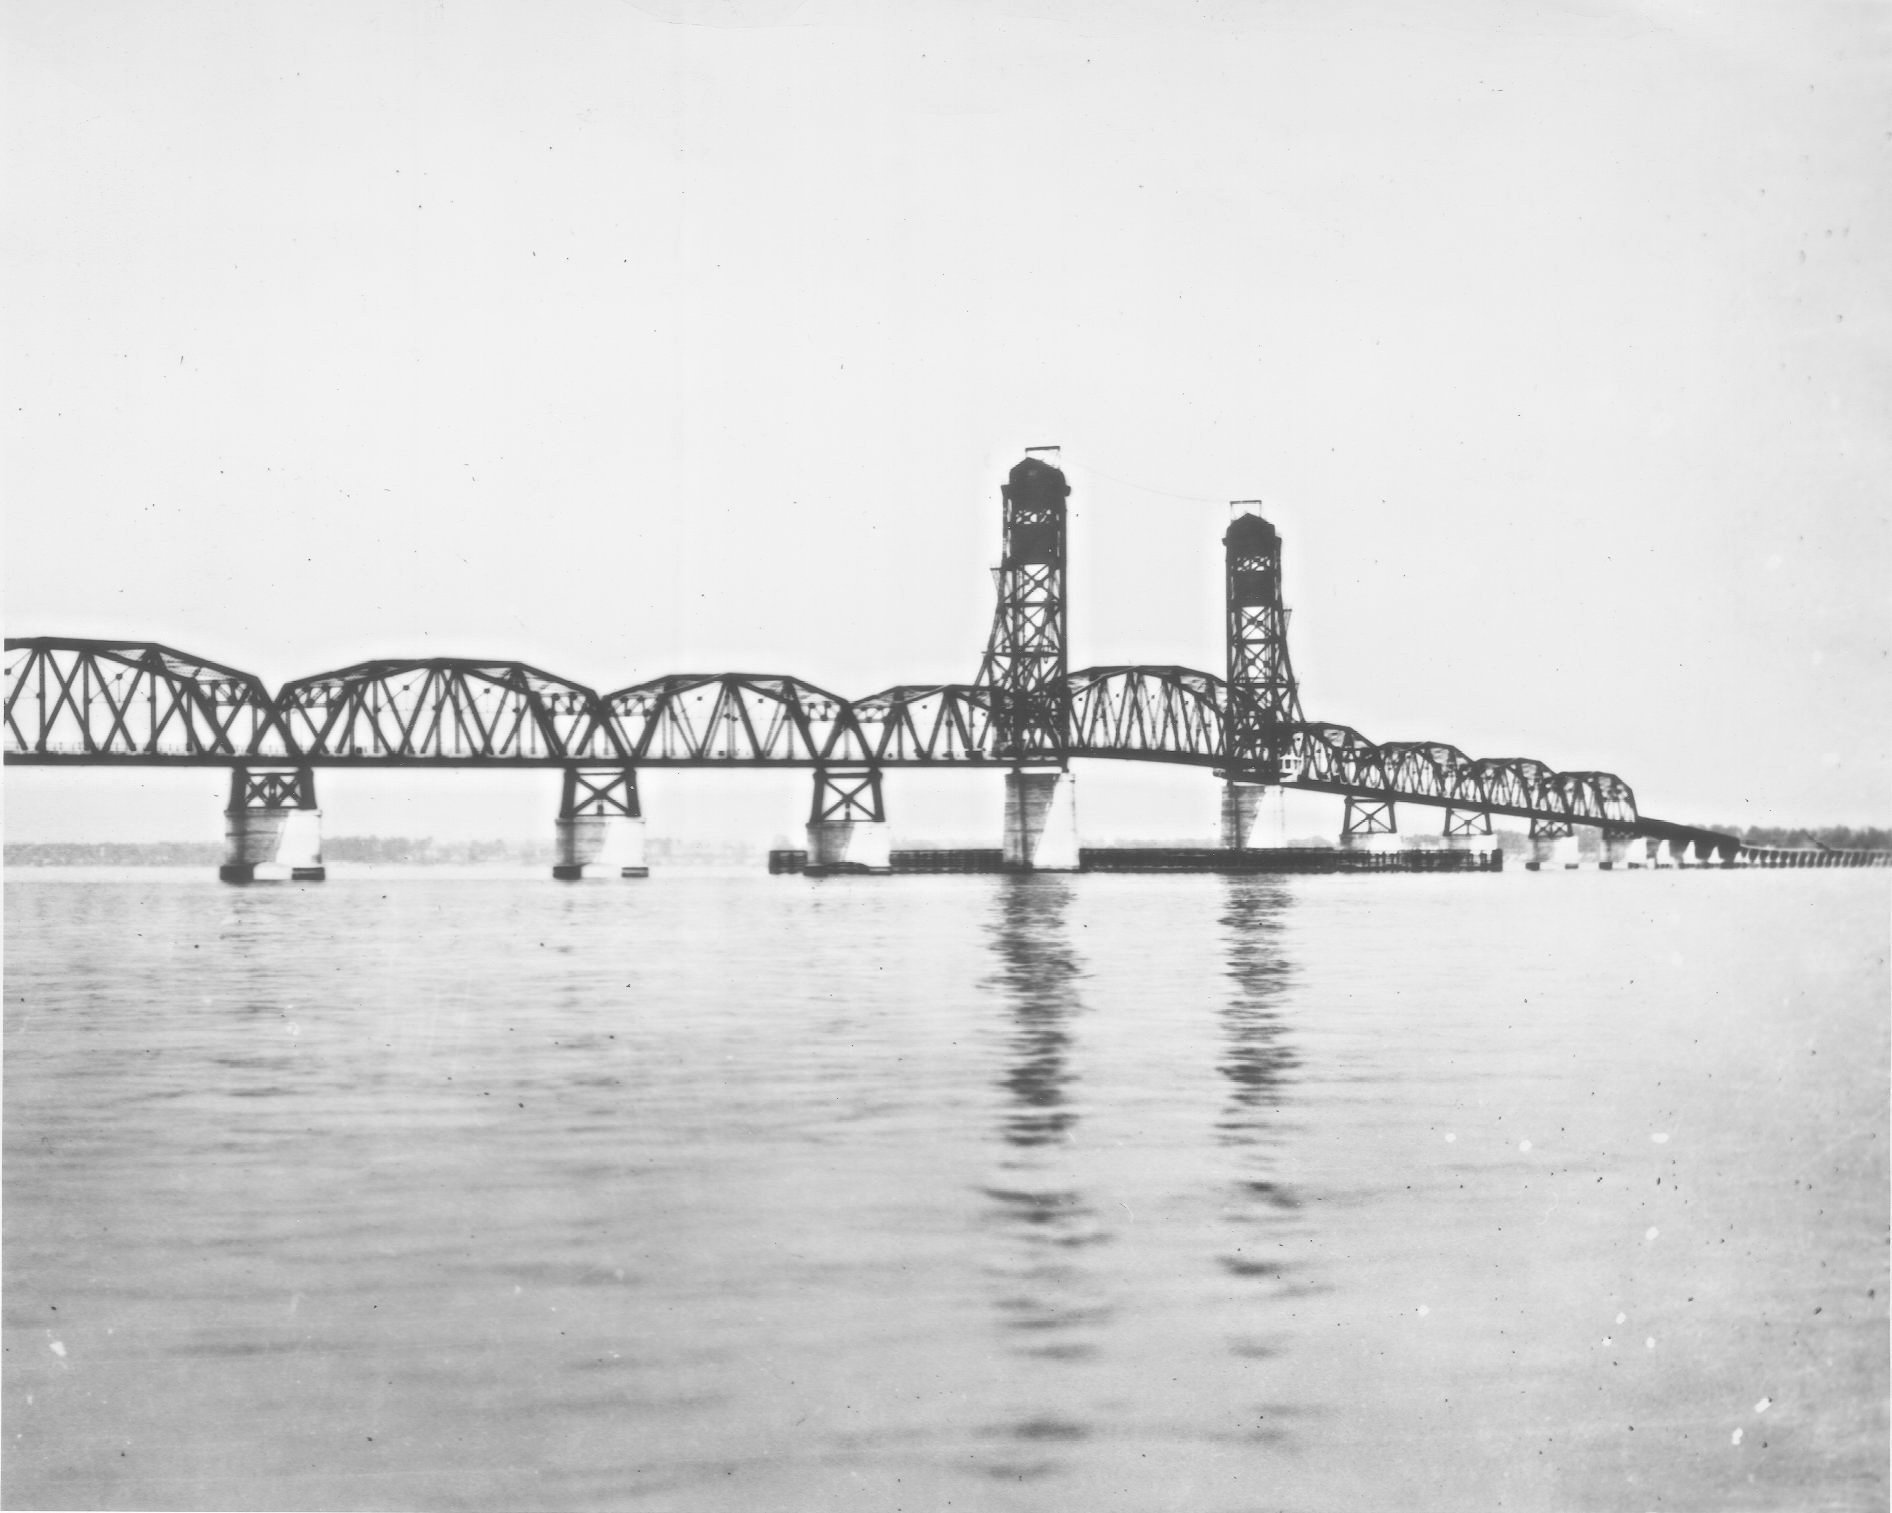 The Old James River Bridge